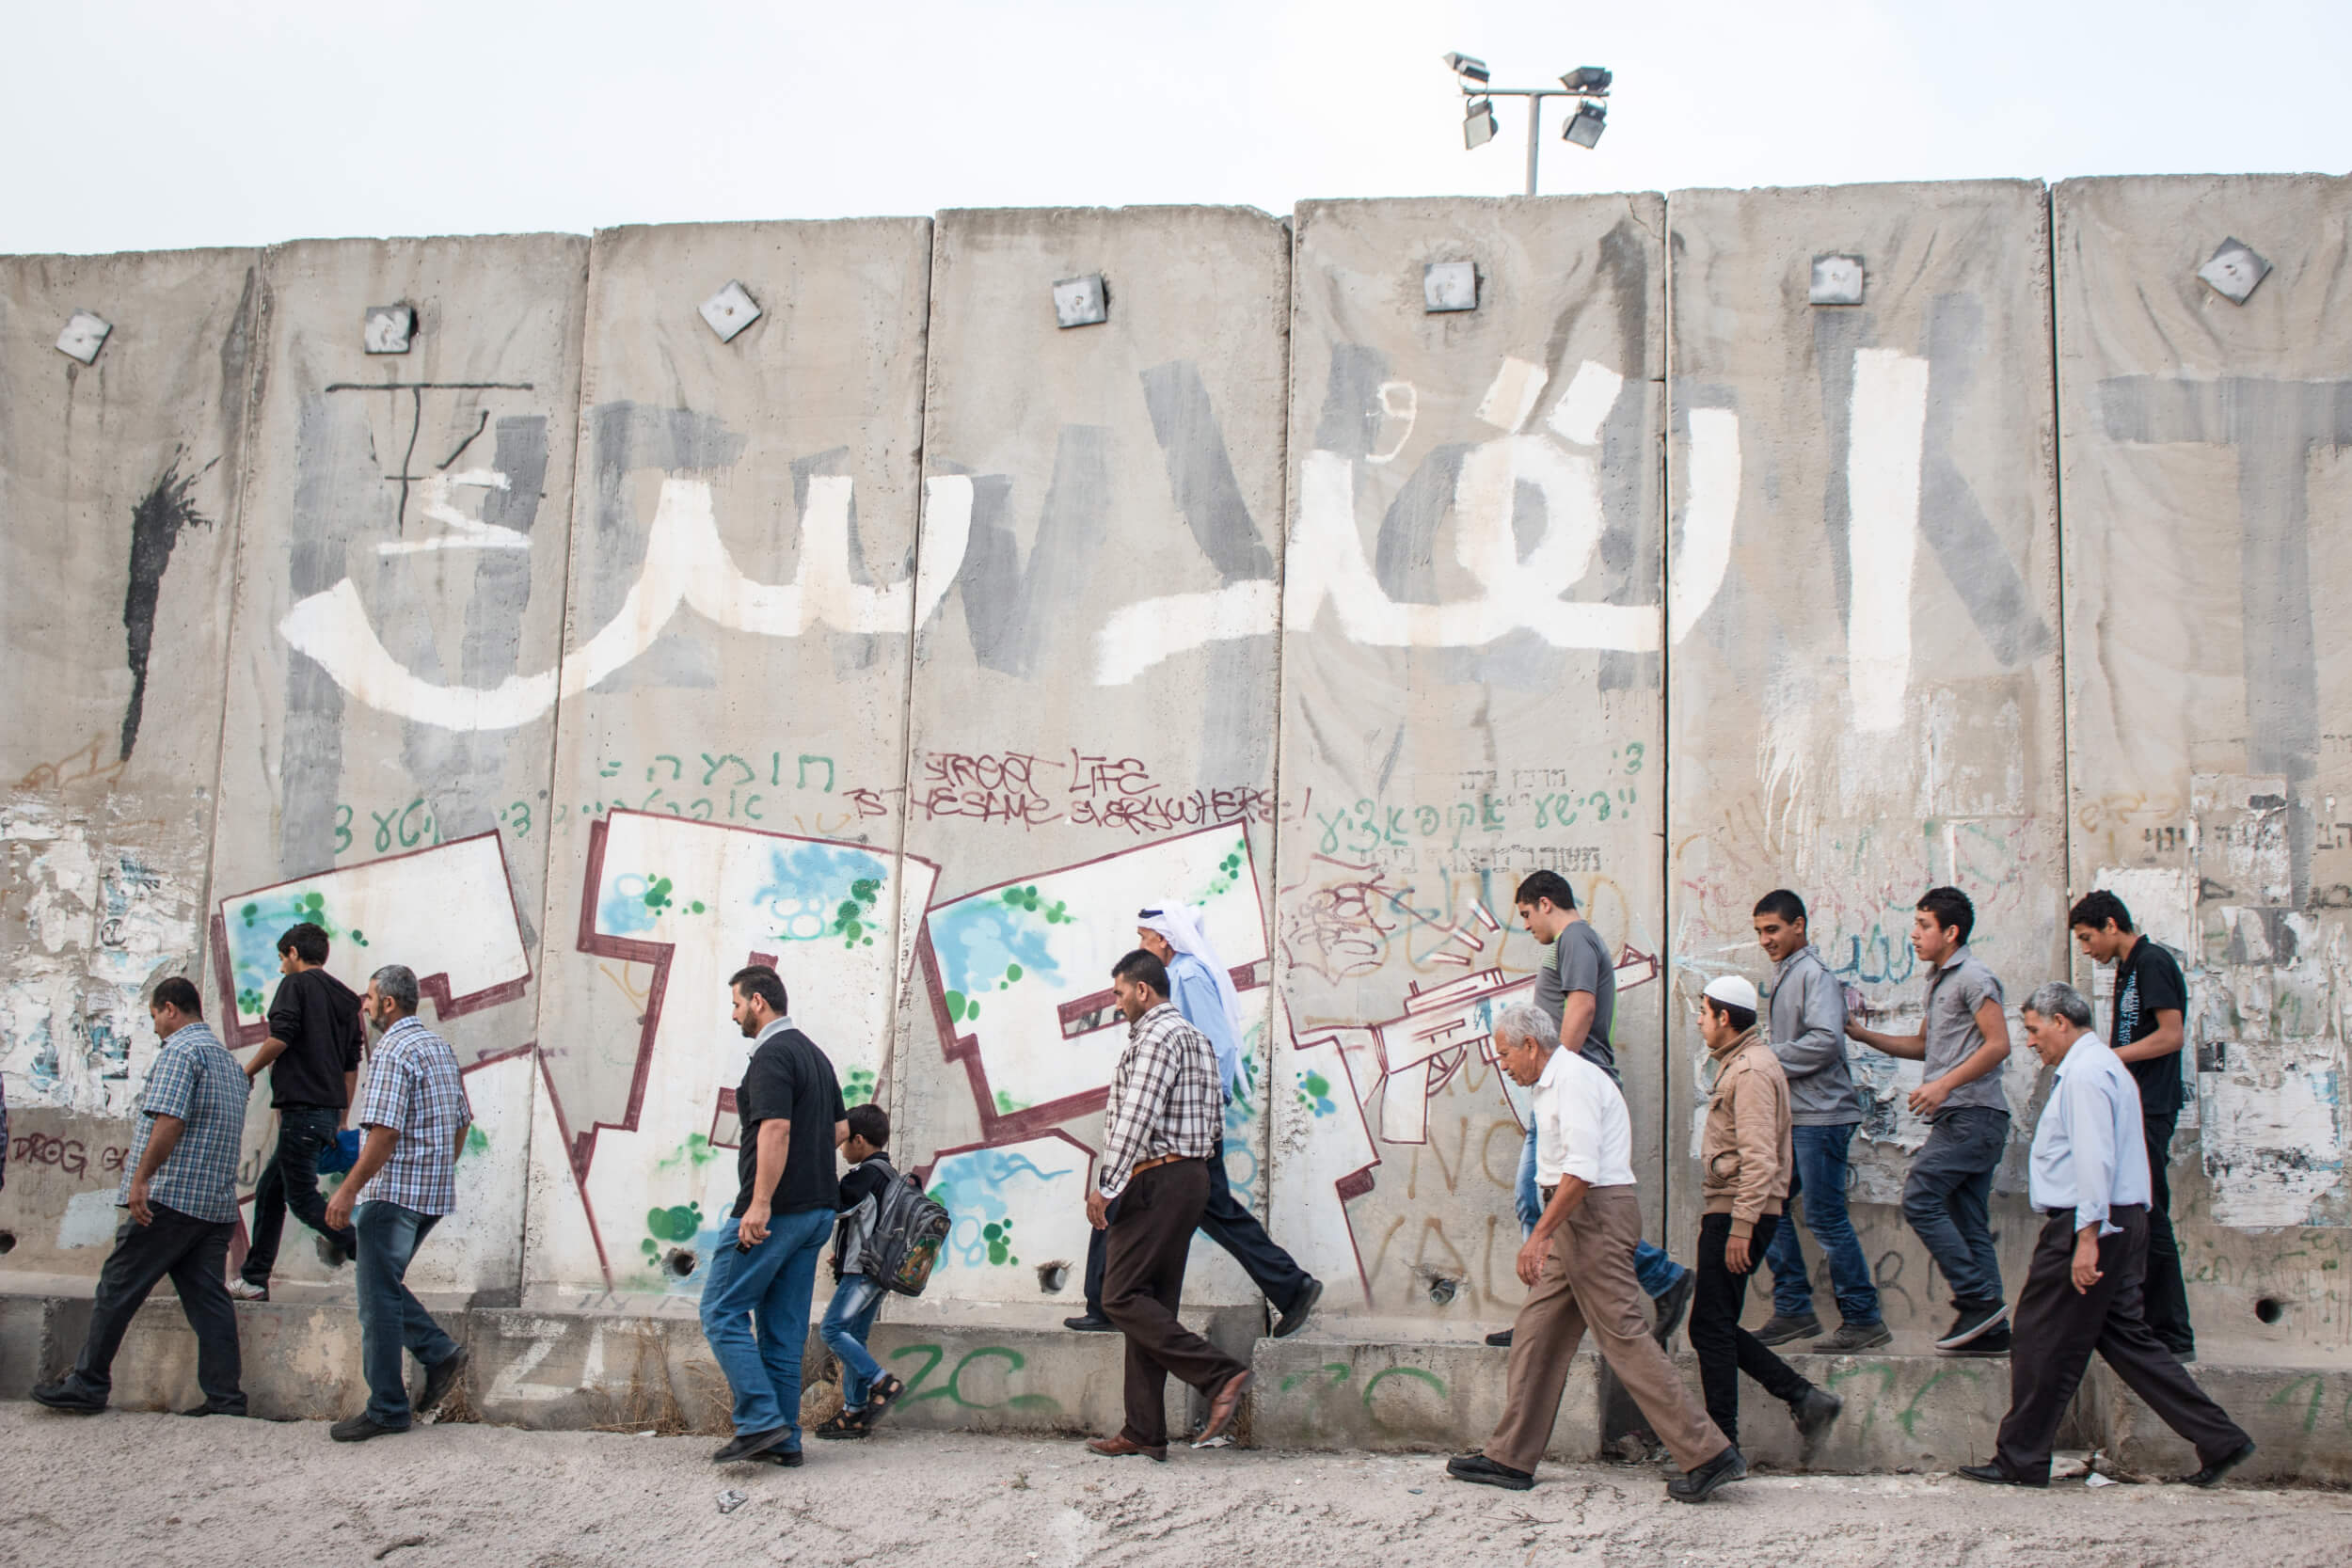 Men walk along the separation wall after dropping off women family members on the adjacent side. (Photo: Karam Saleem)